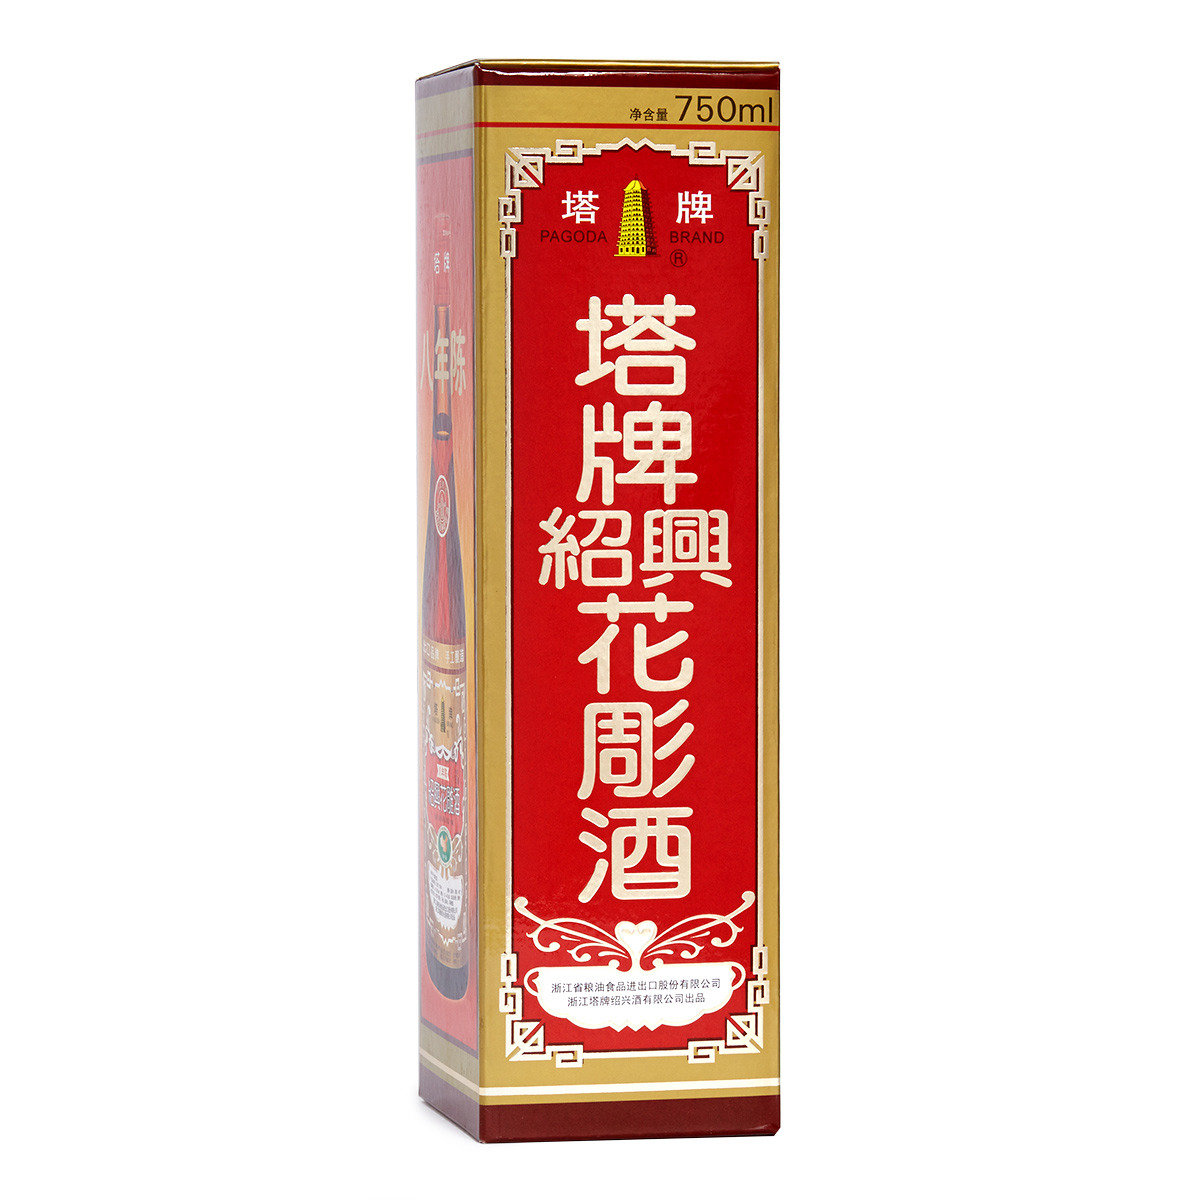 Aged Shao xing Rice Wine (Eight Years)